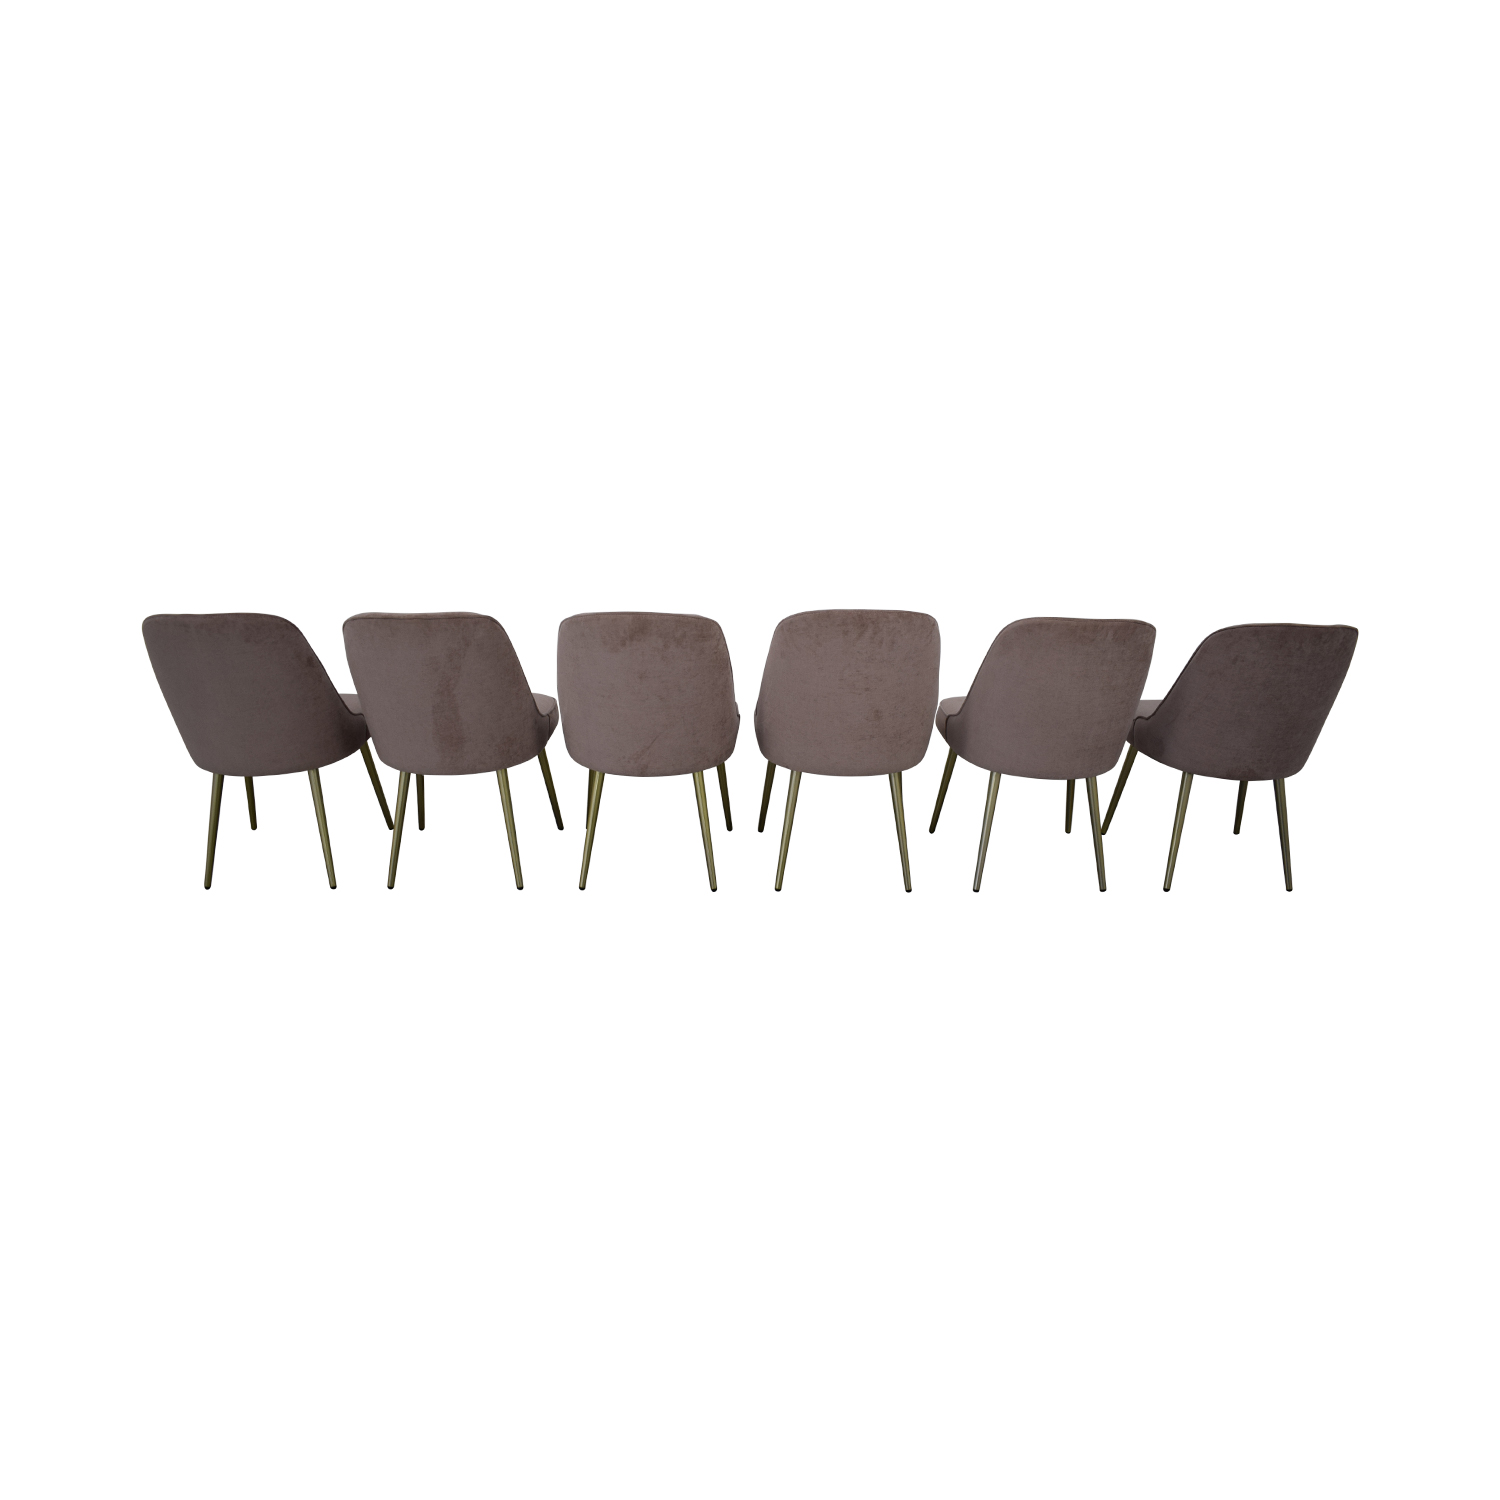 West Elm West Elm Mid Century Upholstered Dining Chairs second hand